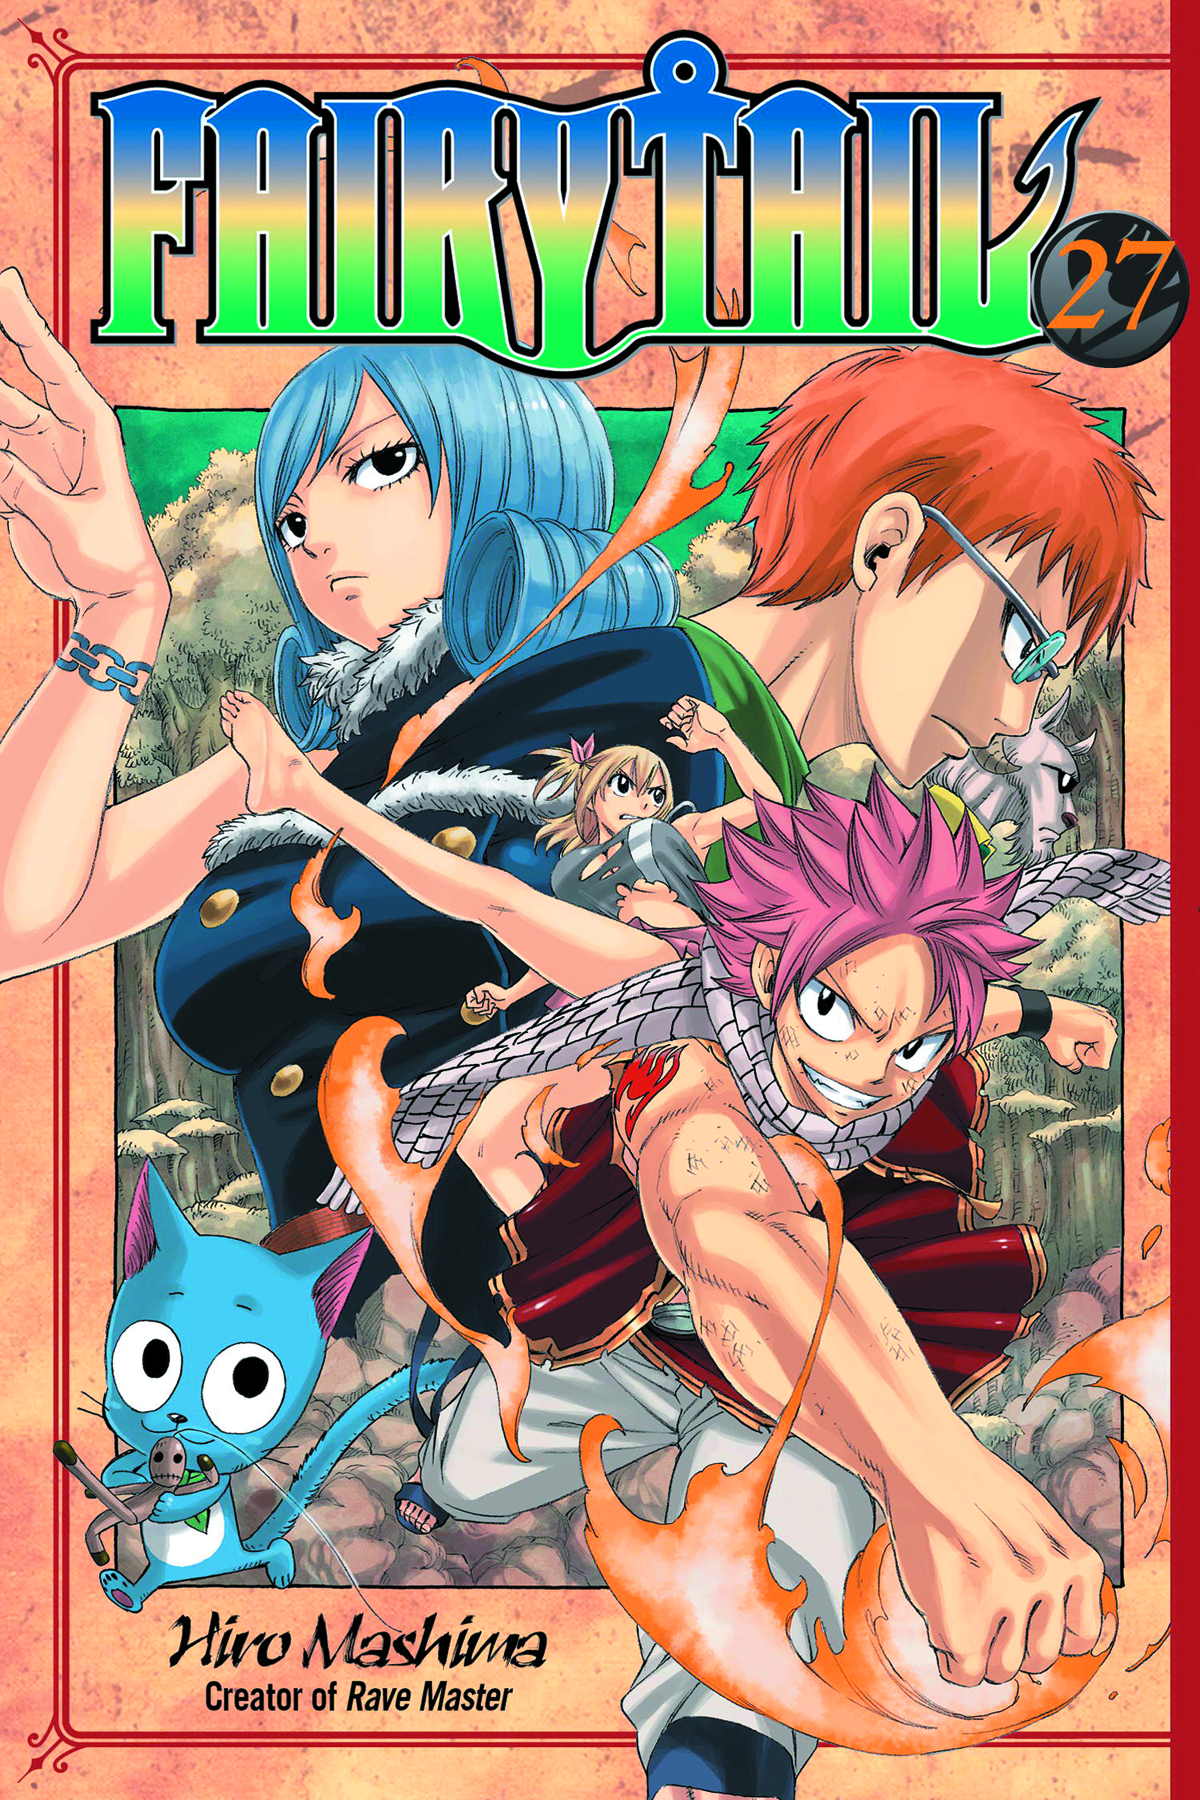 FAIRY TAIL GN VOL 27